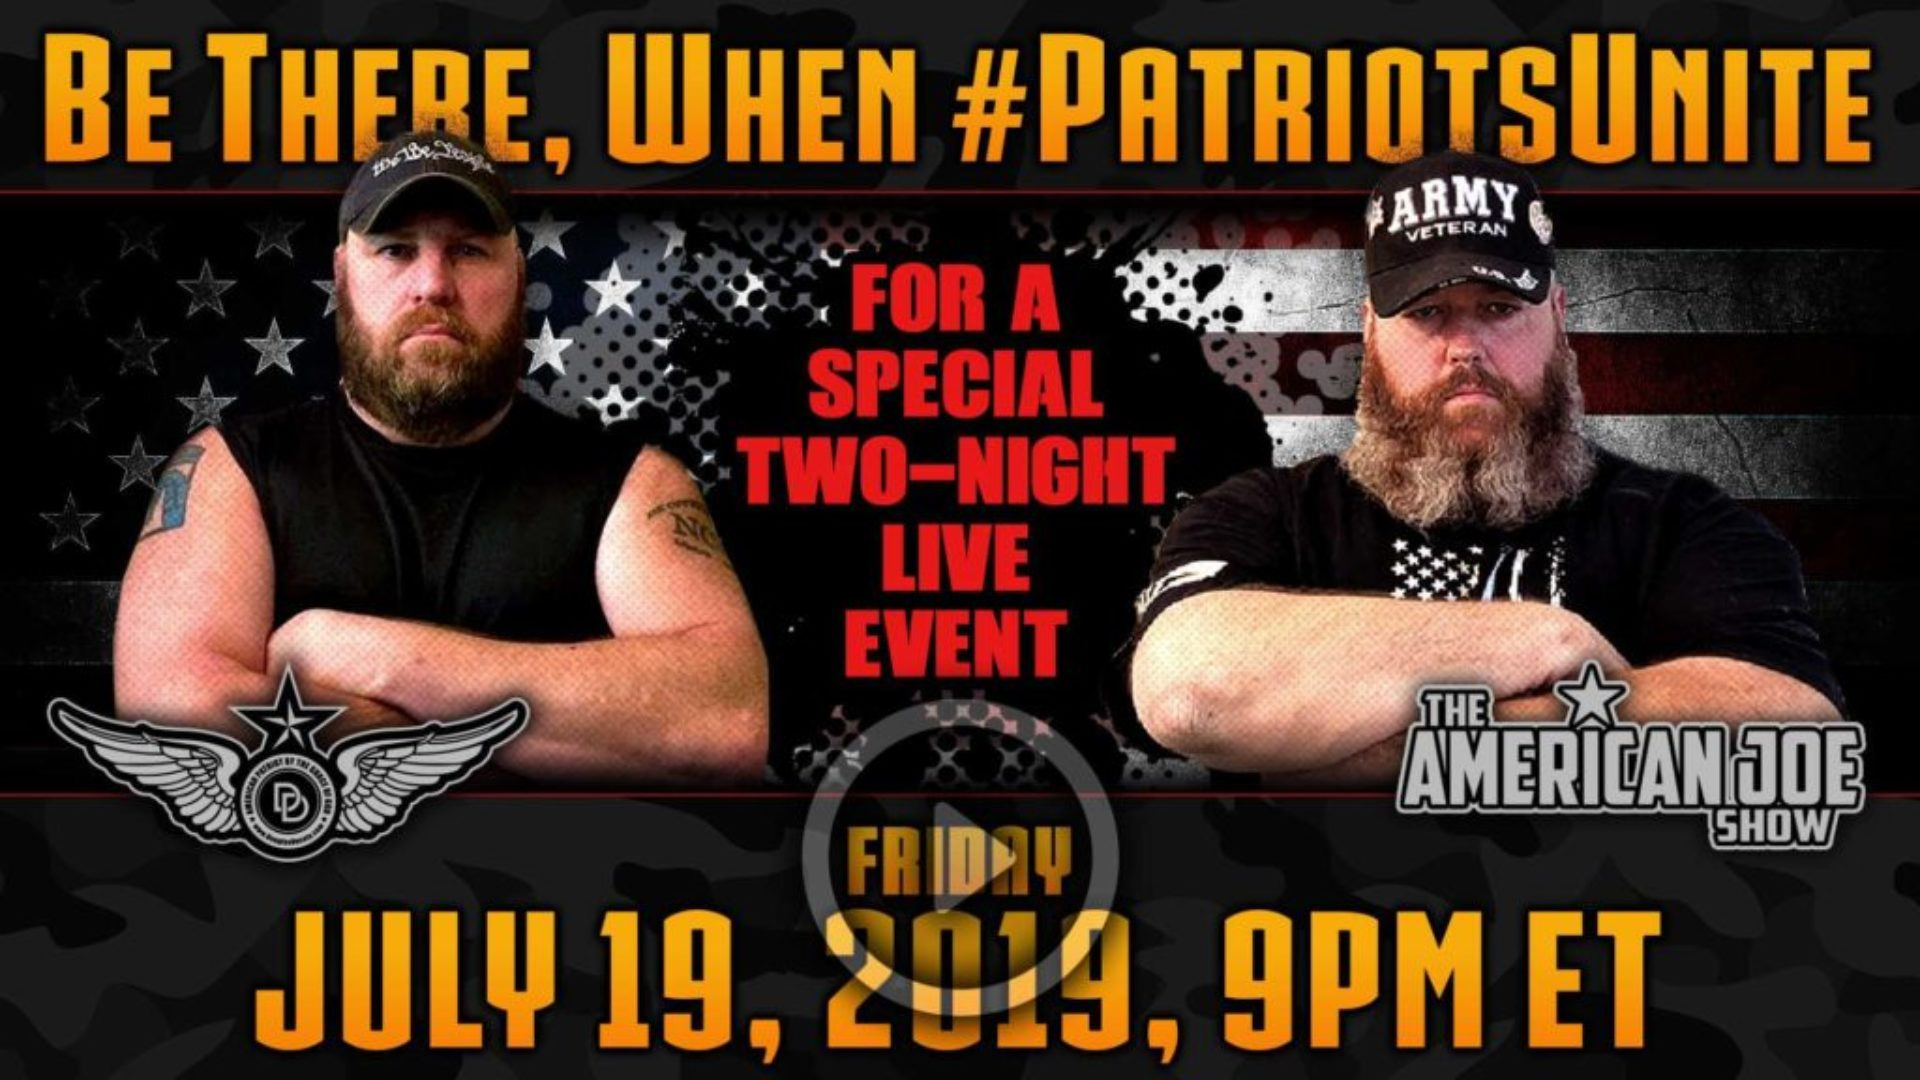 patriots-unite-douglas-ducote-american-joe-july-19-2019-2